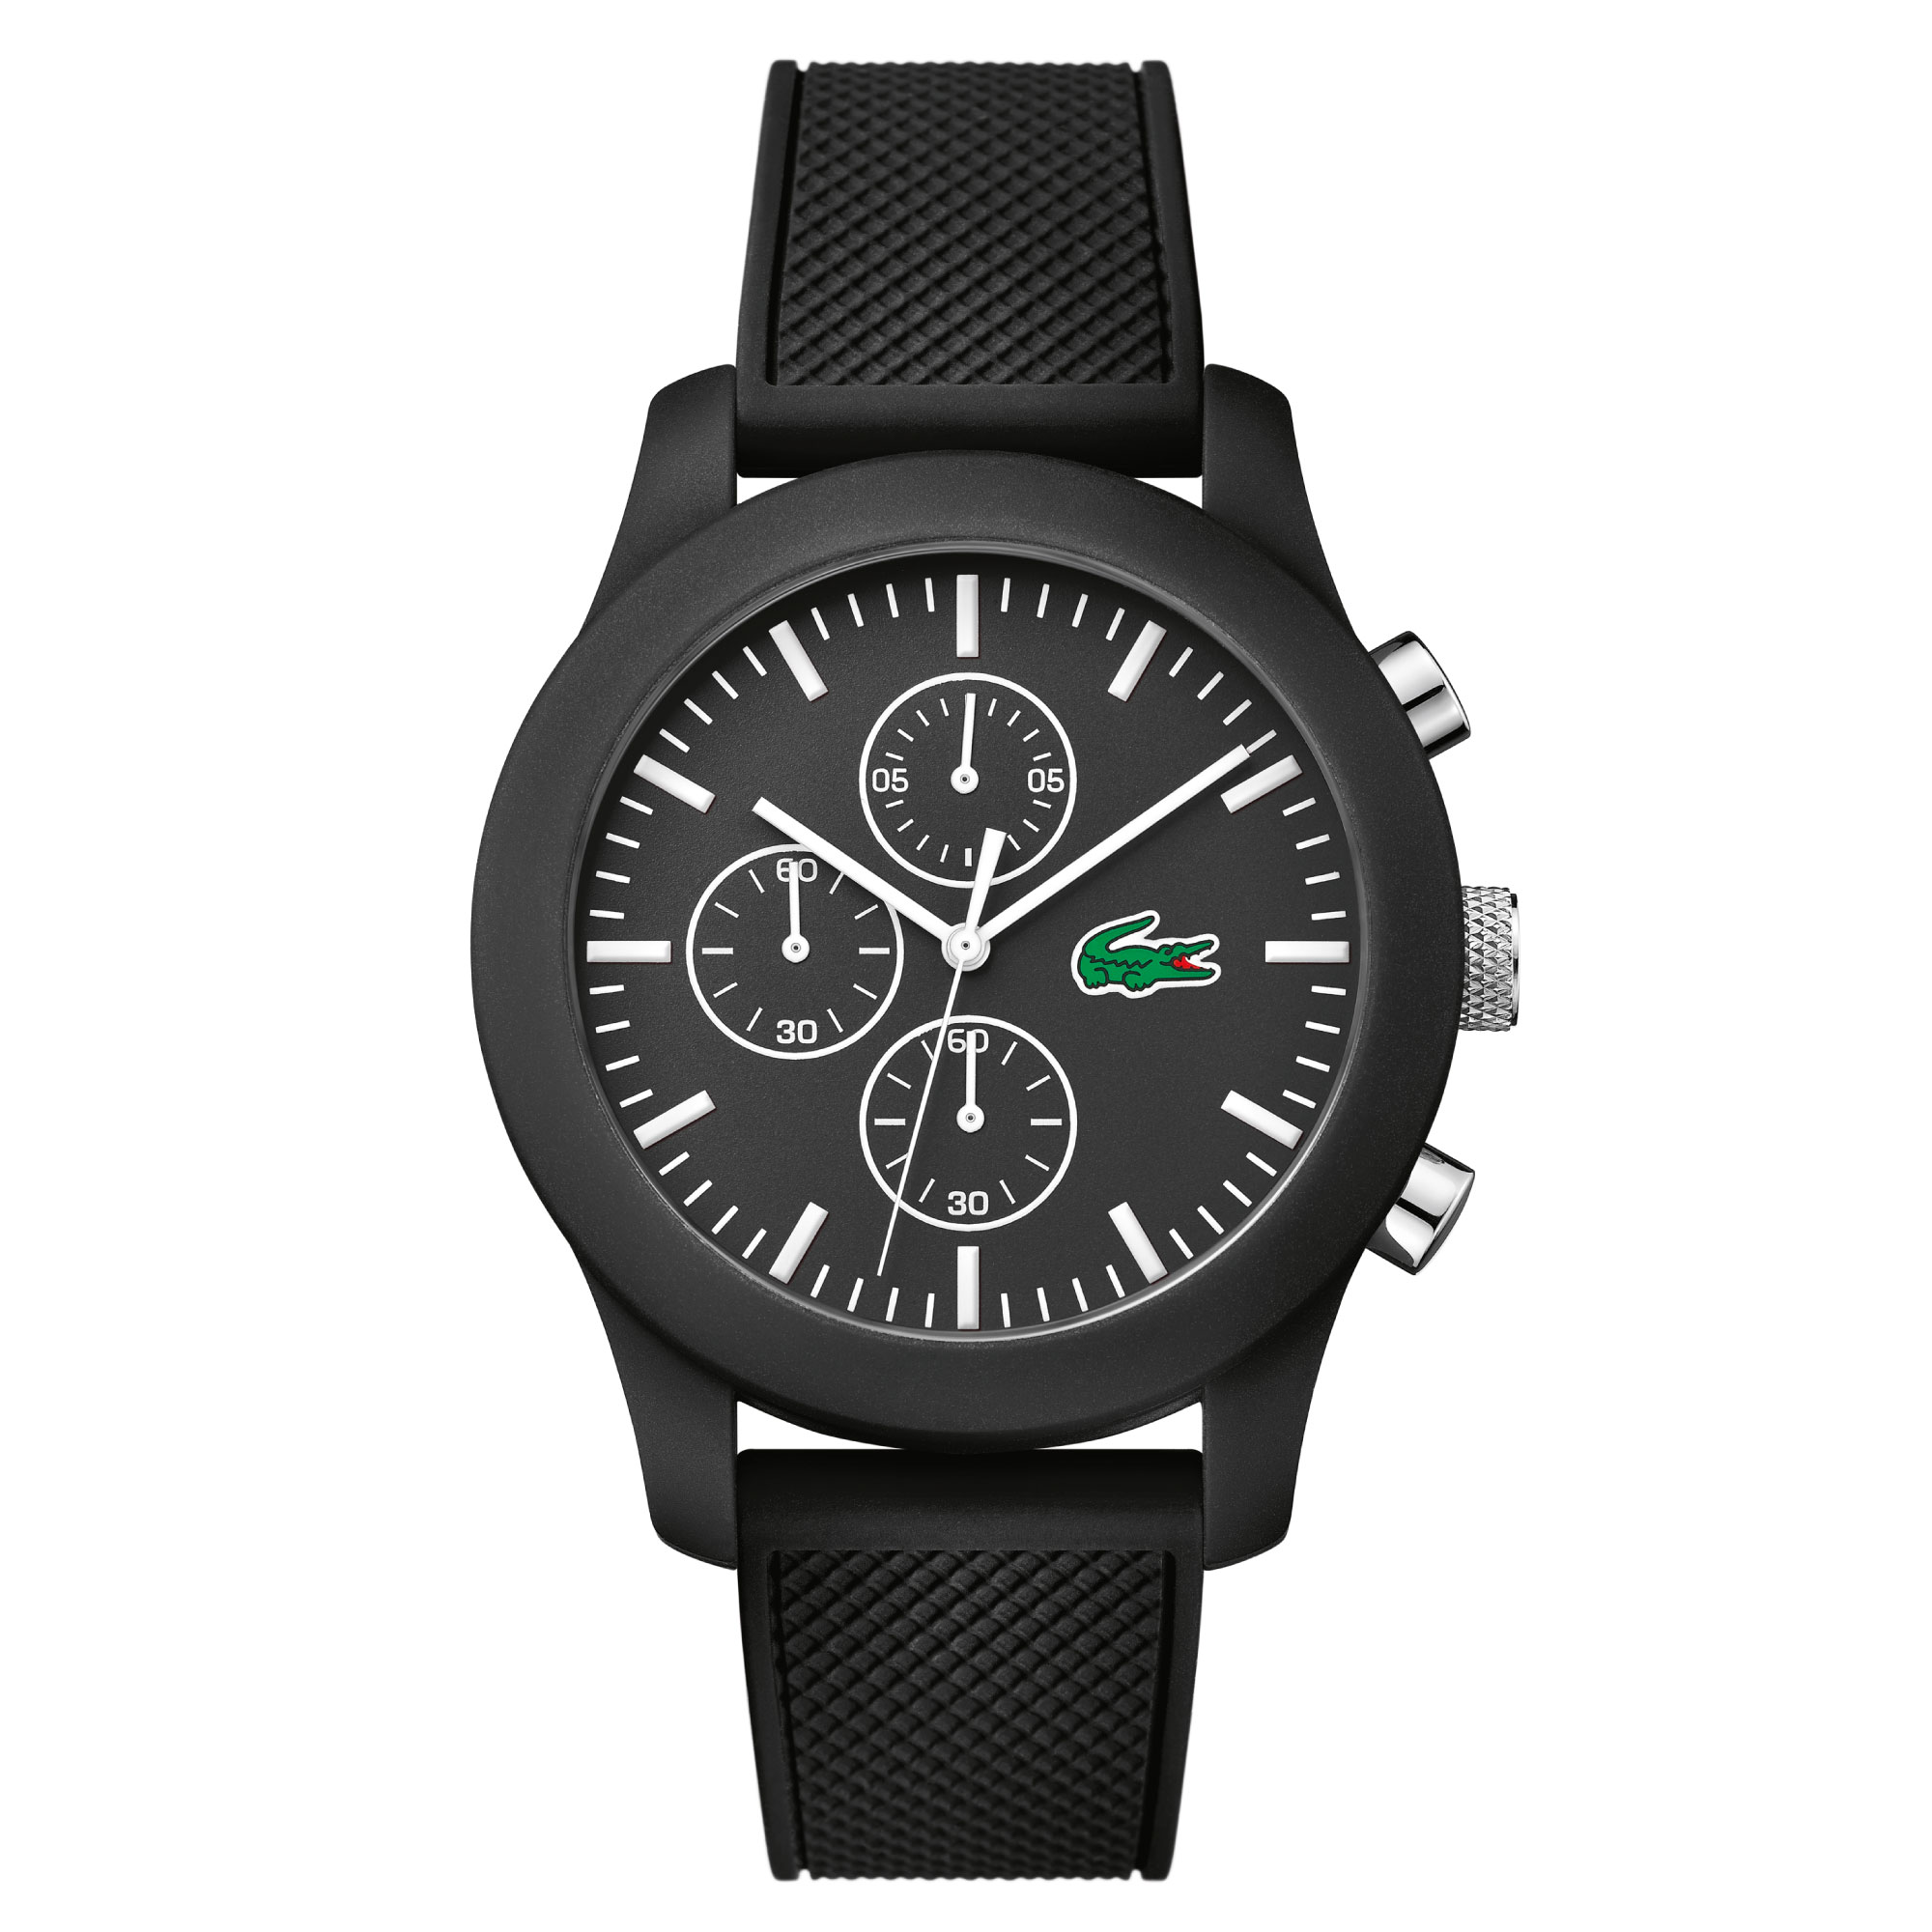 Men's Lacoste 12.12 Watch - Black Edition